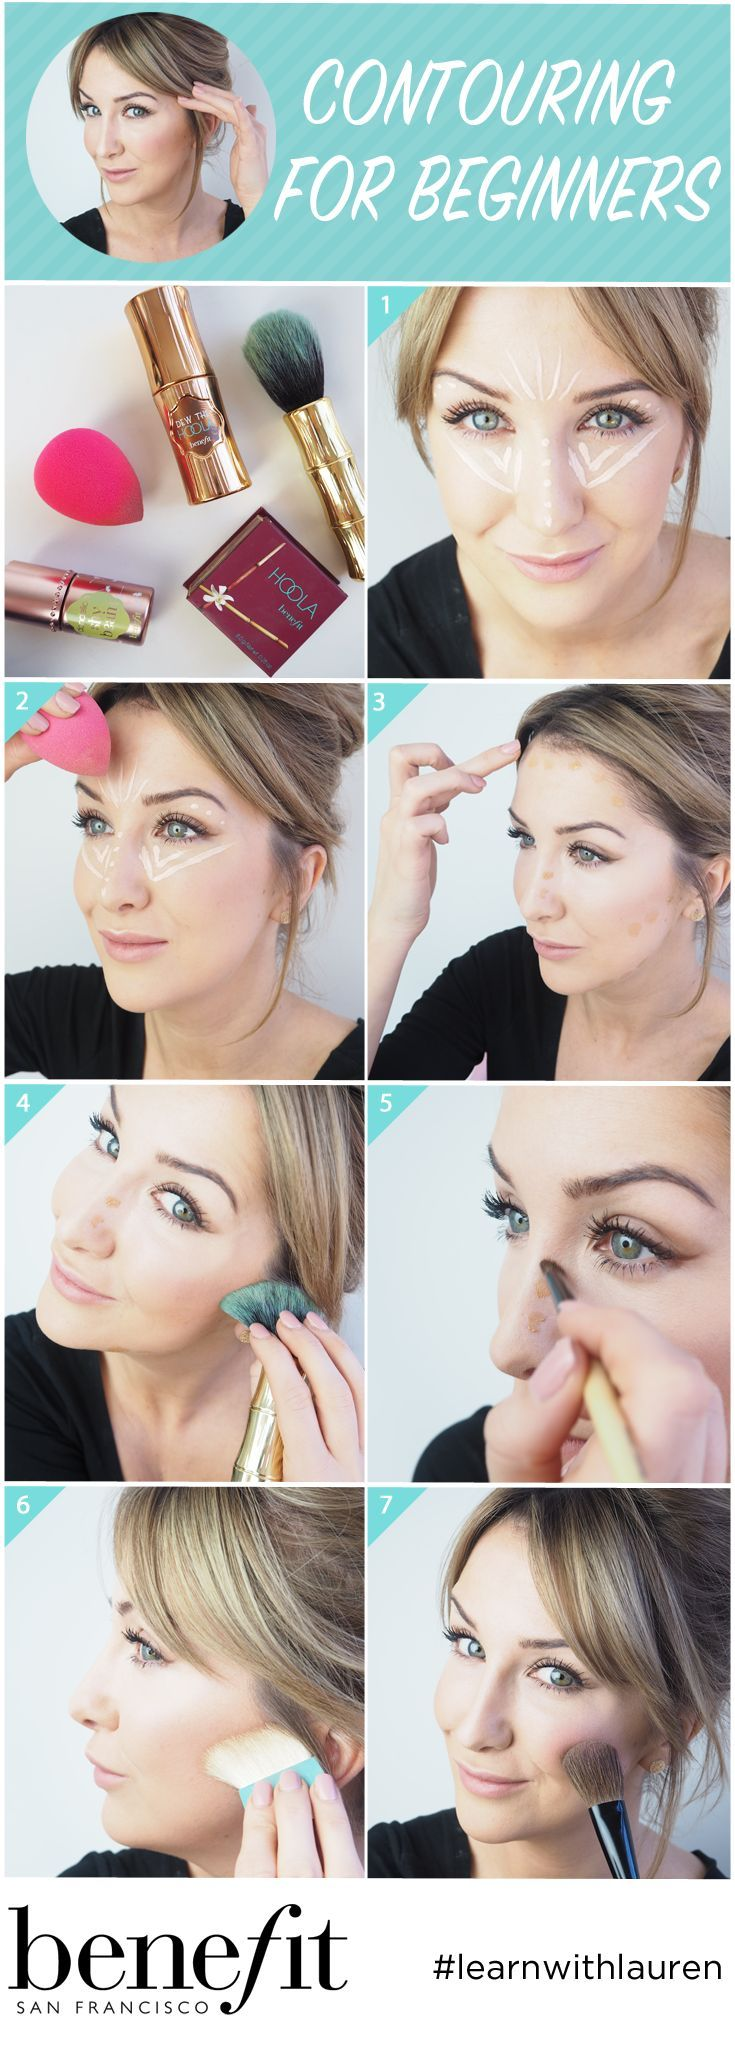 Makeover Tutorials: Contouring For Beginners Using The New Shy Beam And Dew